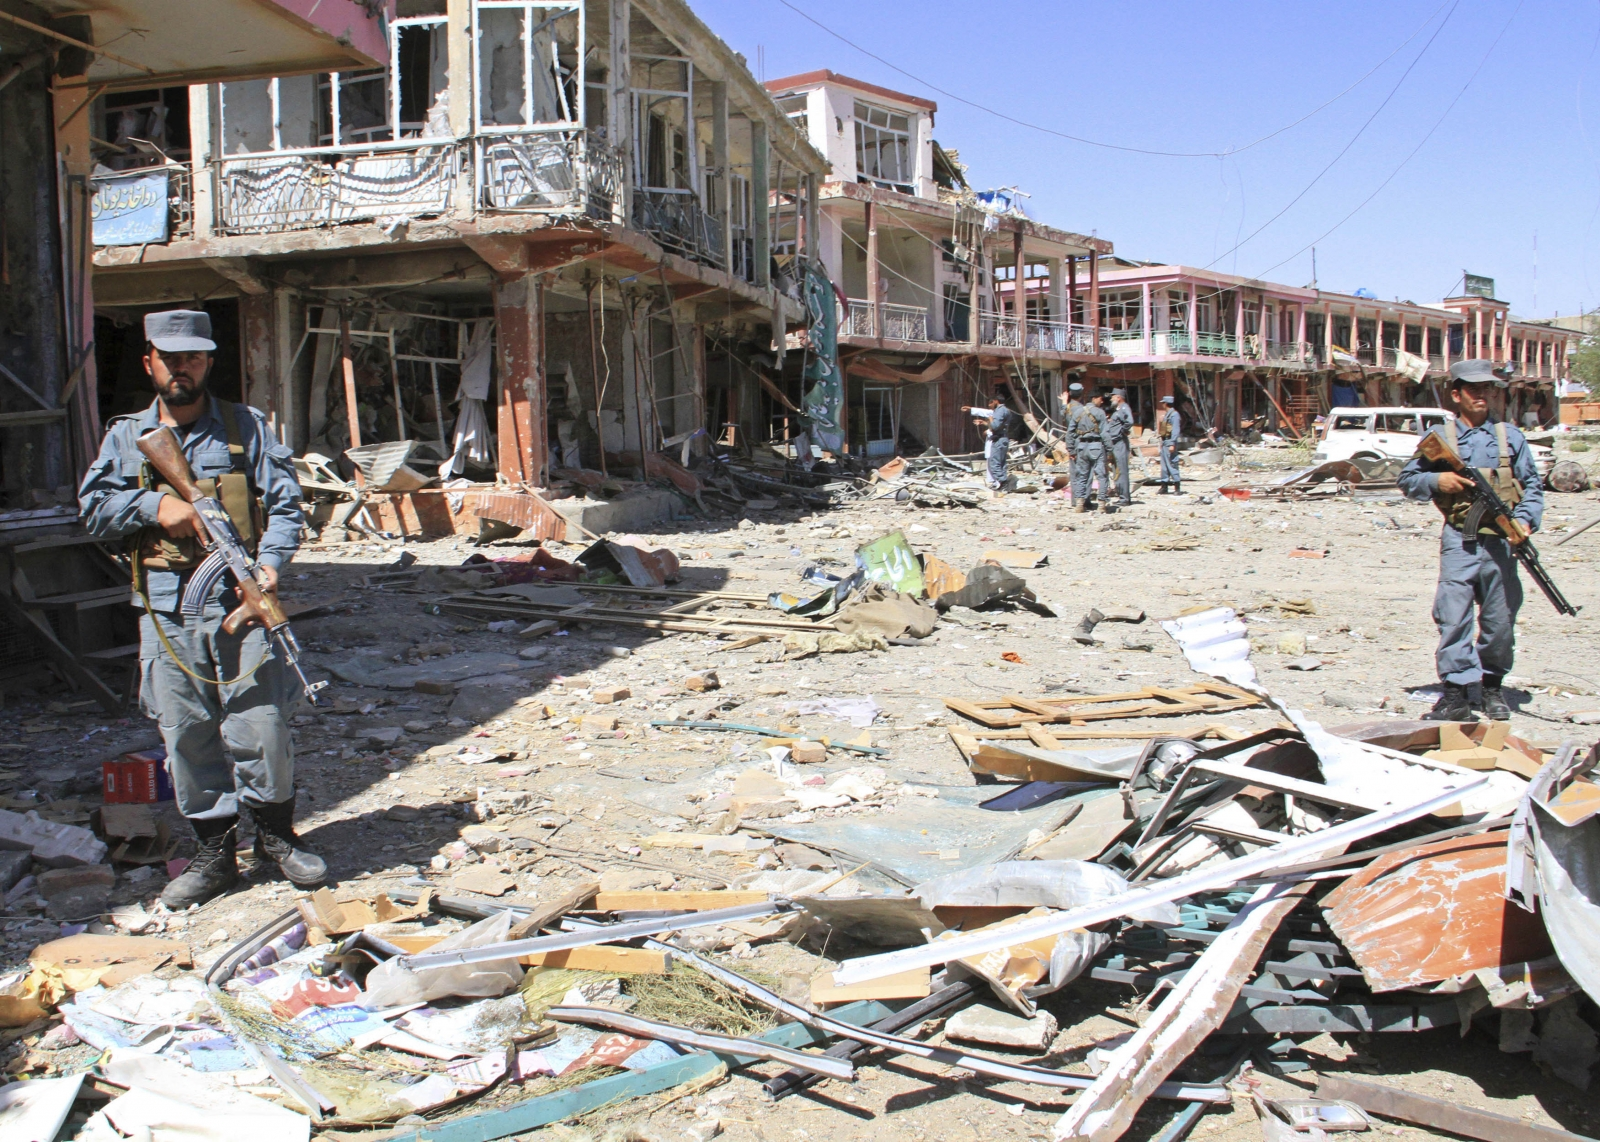 Afghan police stand guard among damaged buildings after a suicide attack in Ghazni Province